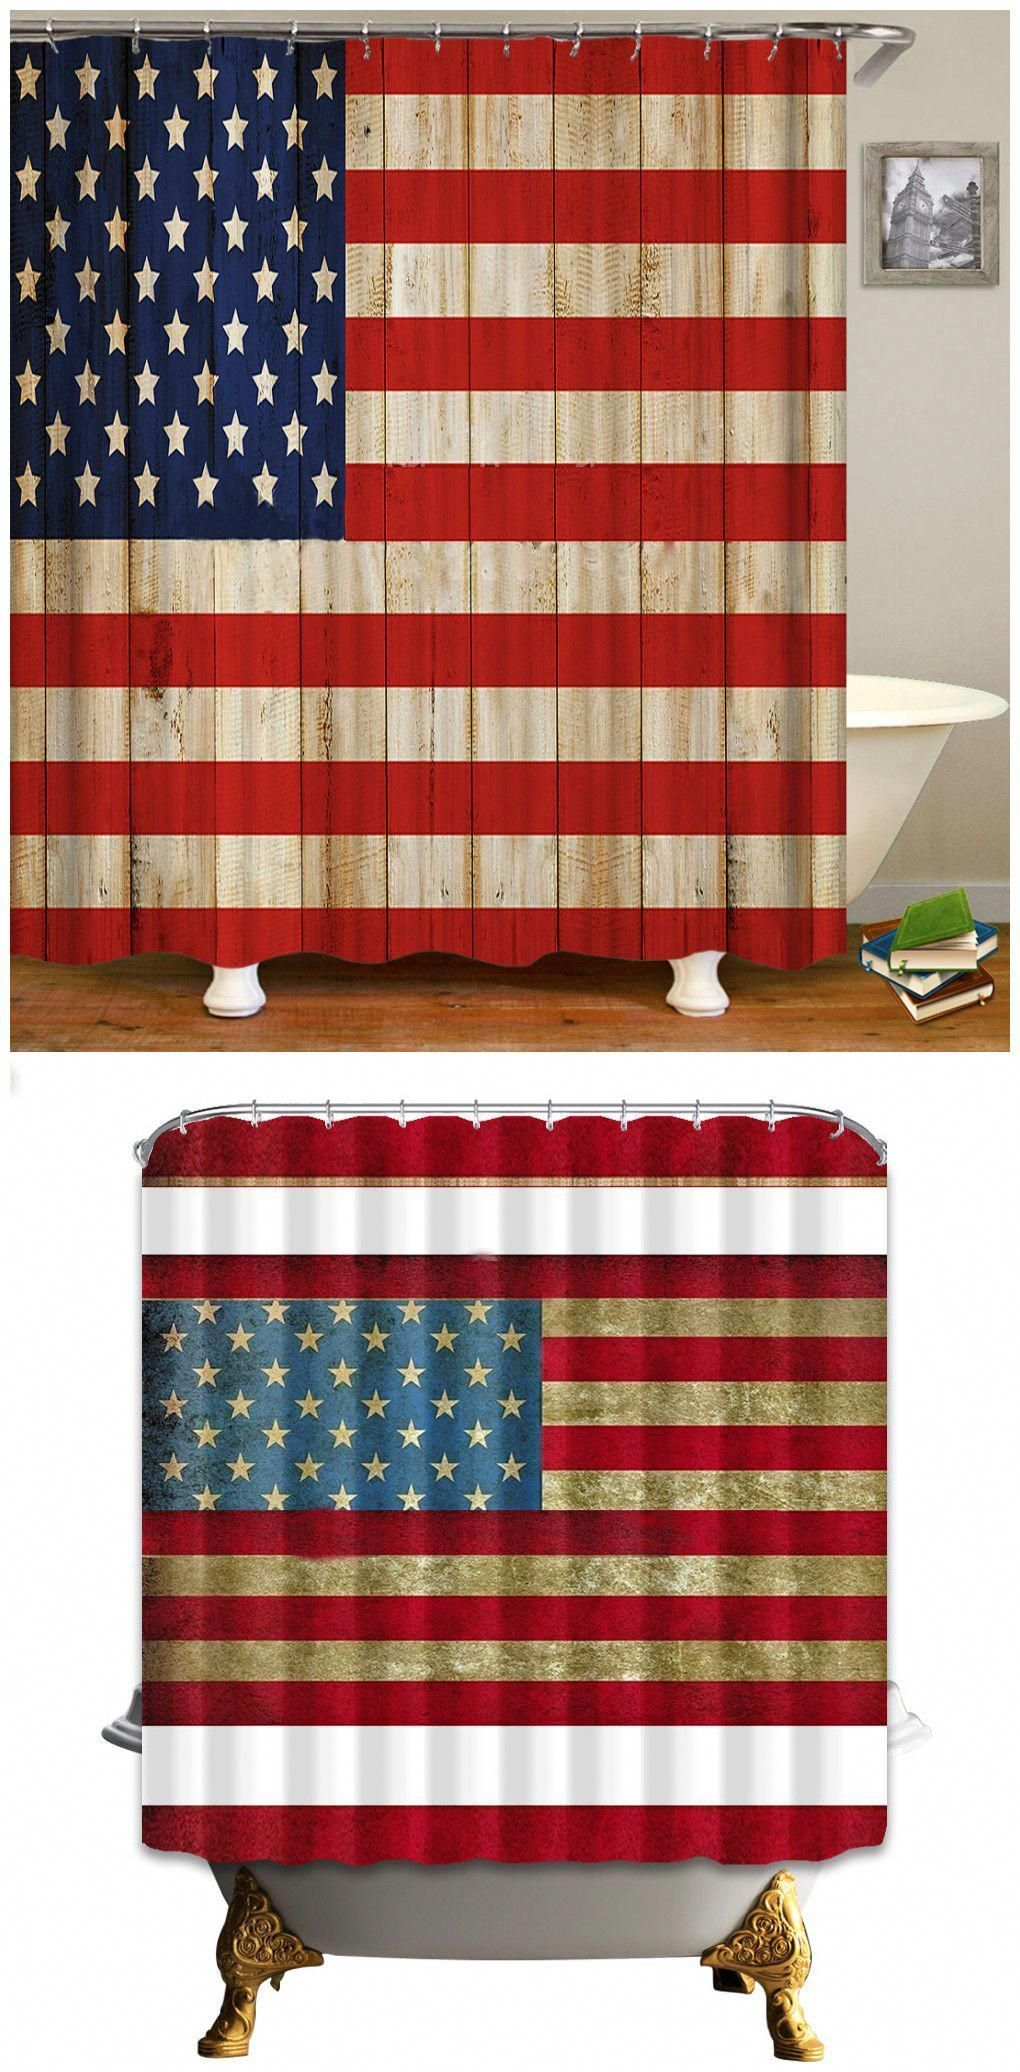 Africa Afro Girl Girl Shower Curtain American Flag Star Flag